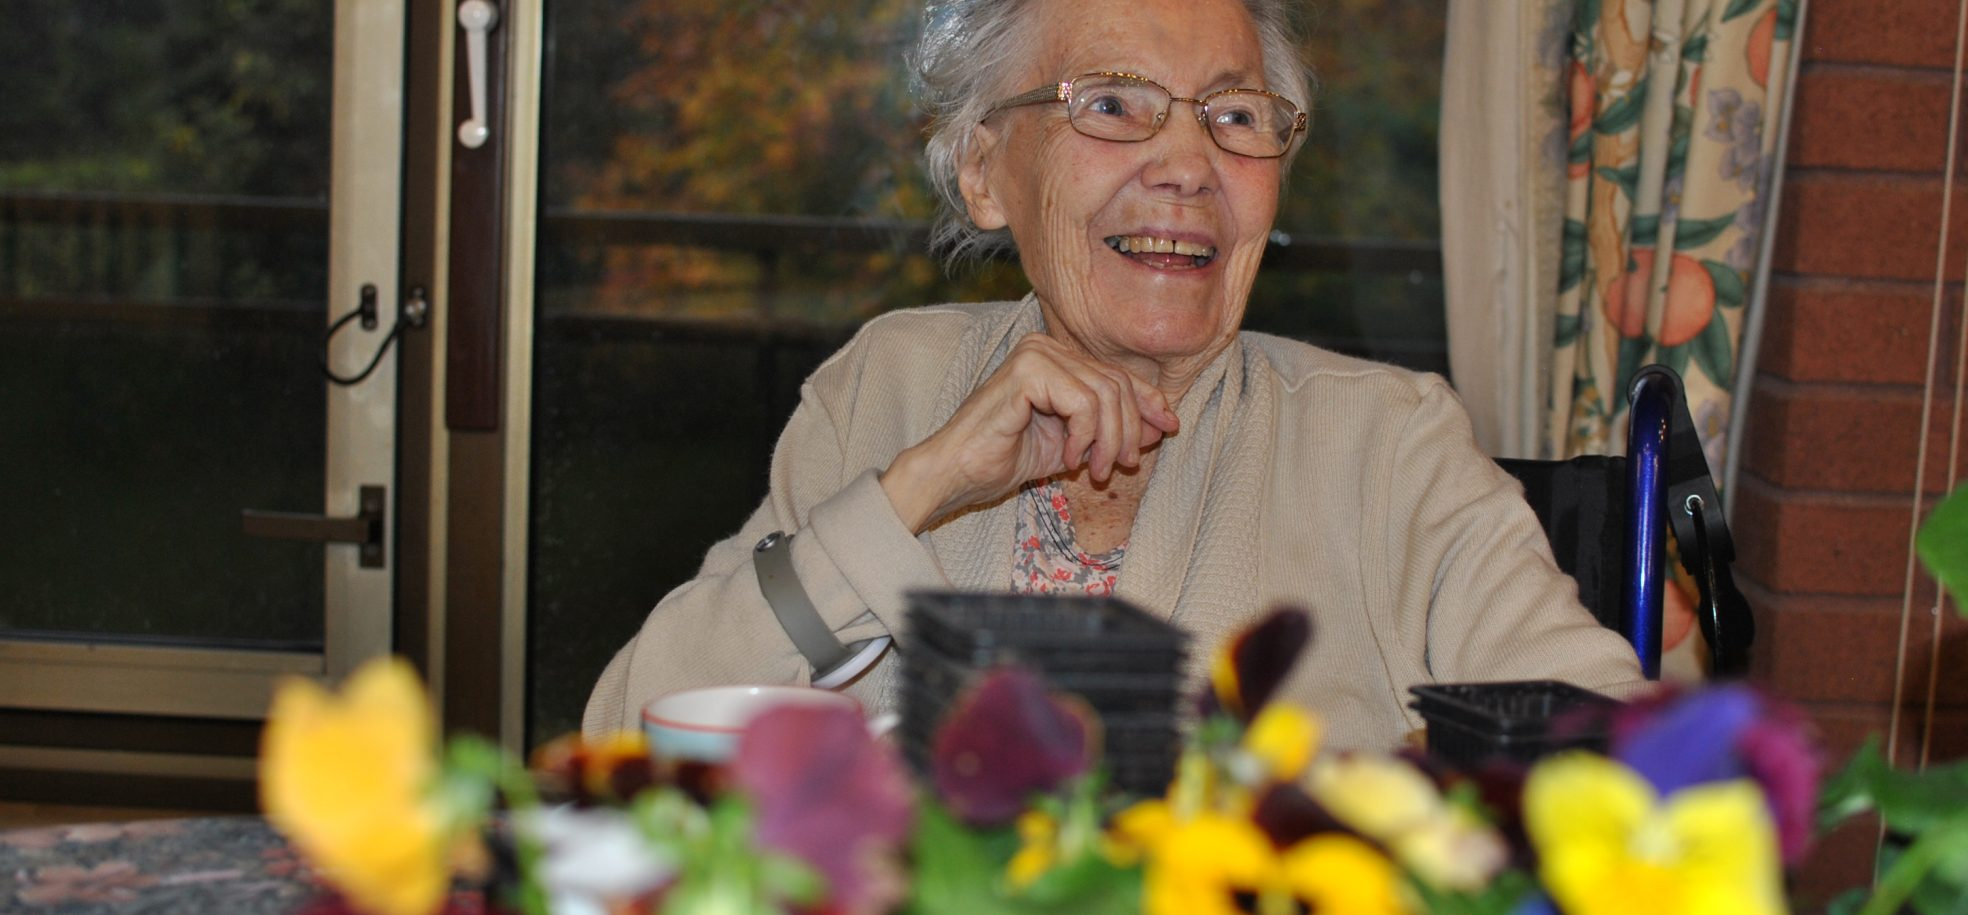 Cadogan Court resident enjoying some winter gardening at the Home in Exeter